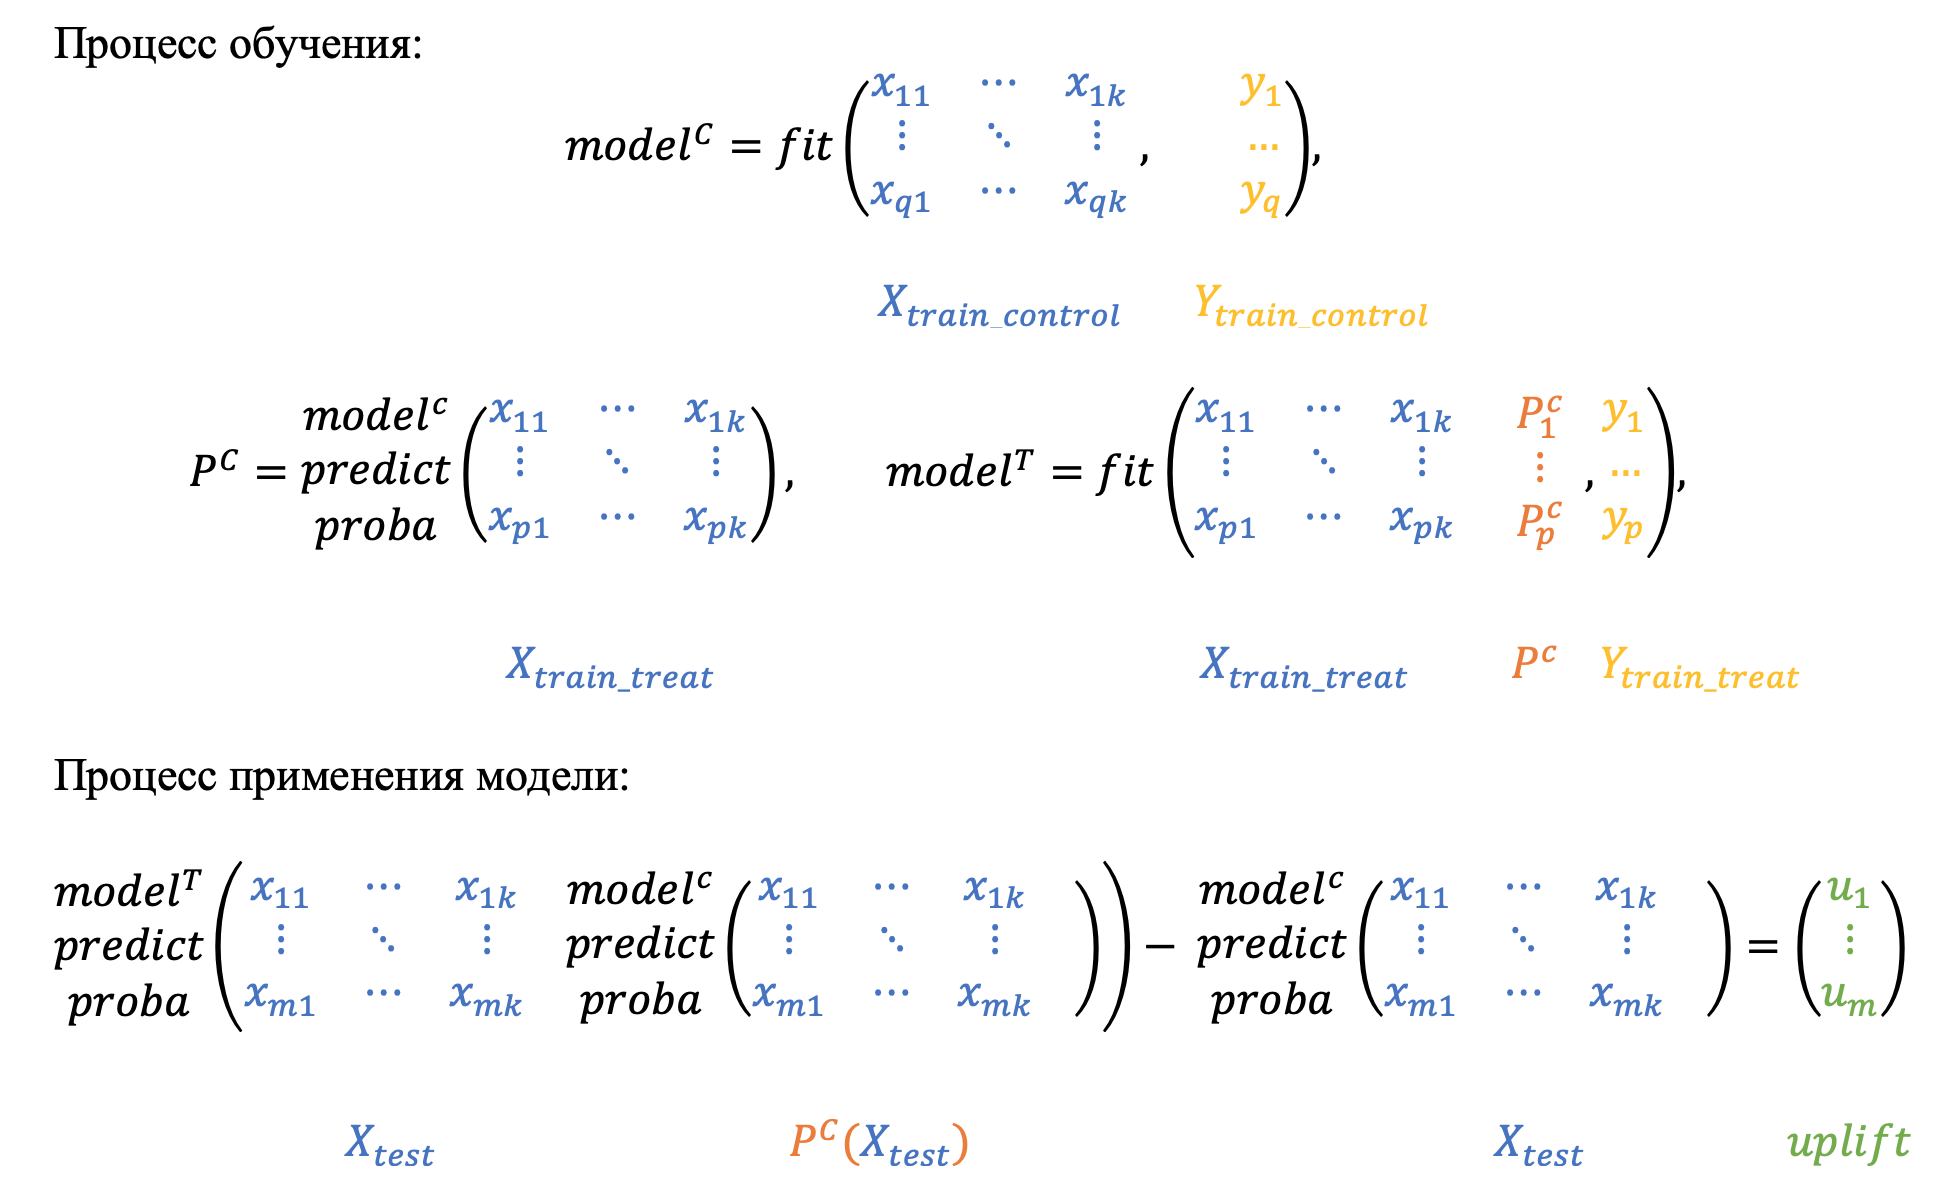 Two dependent models